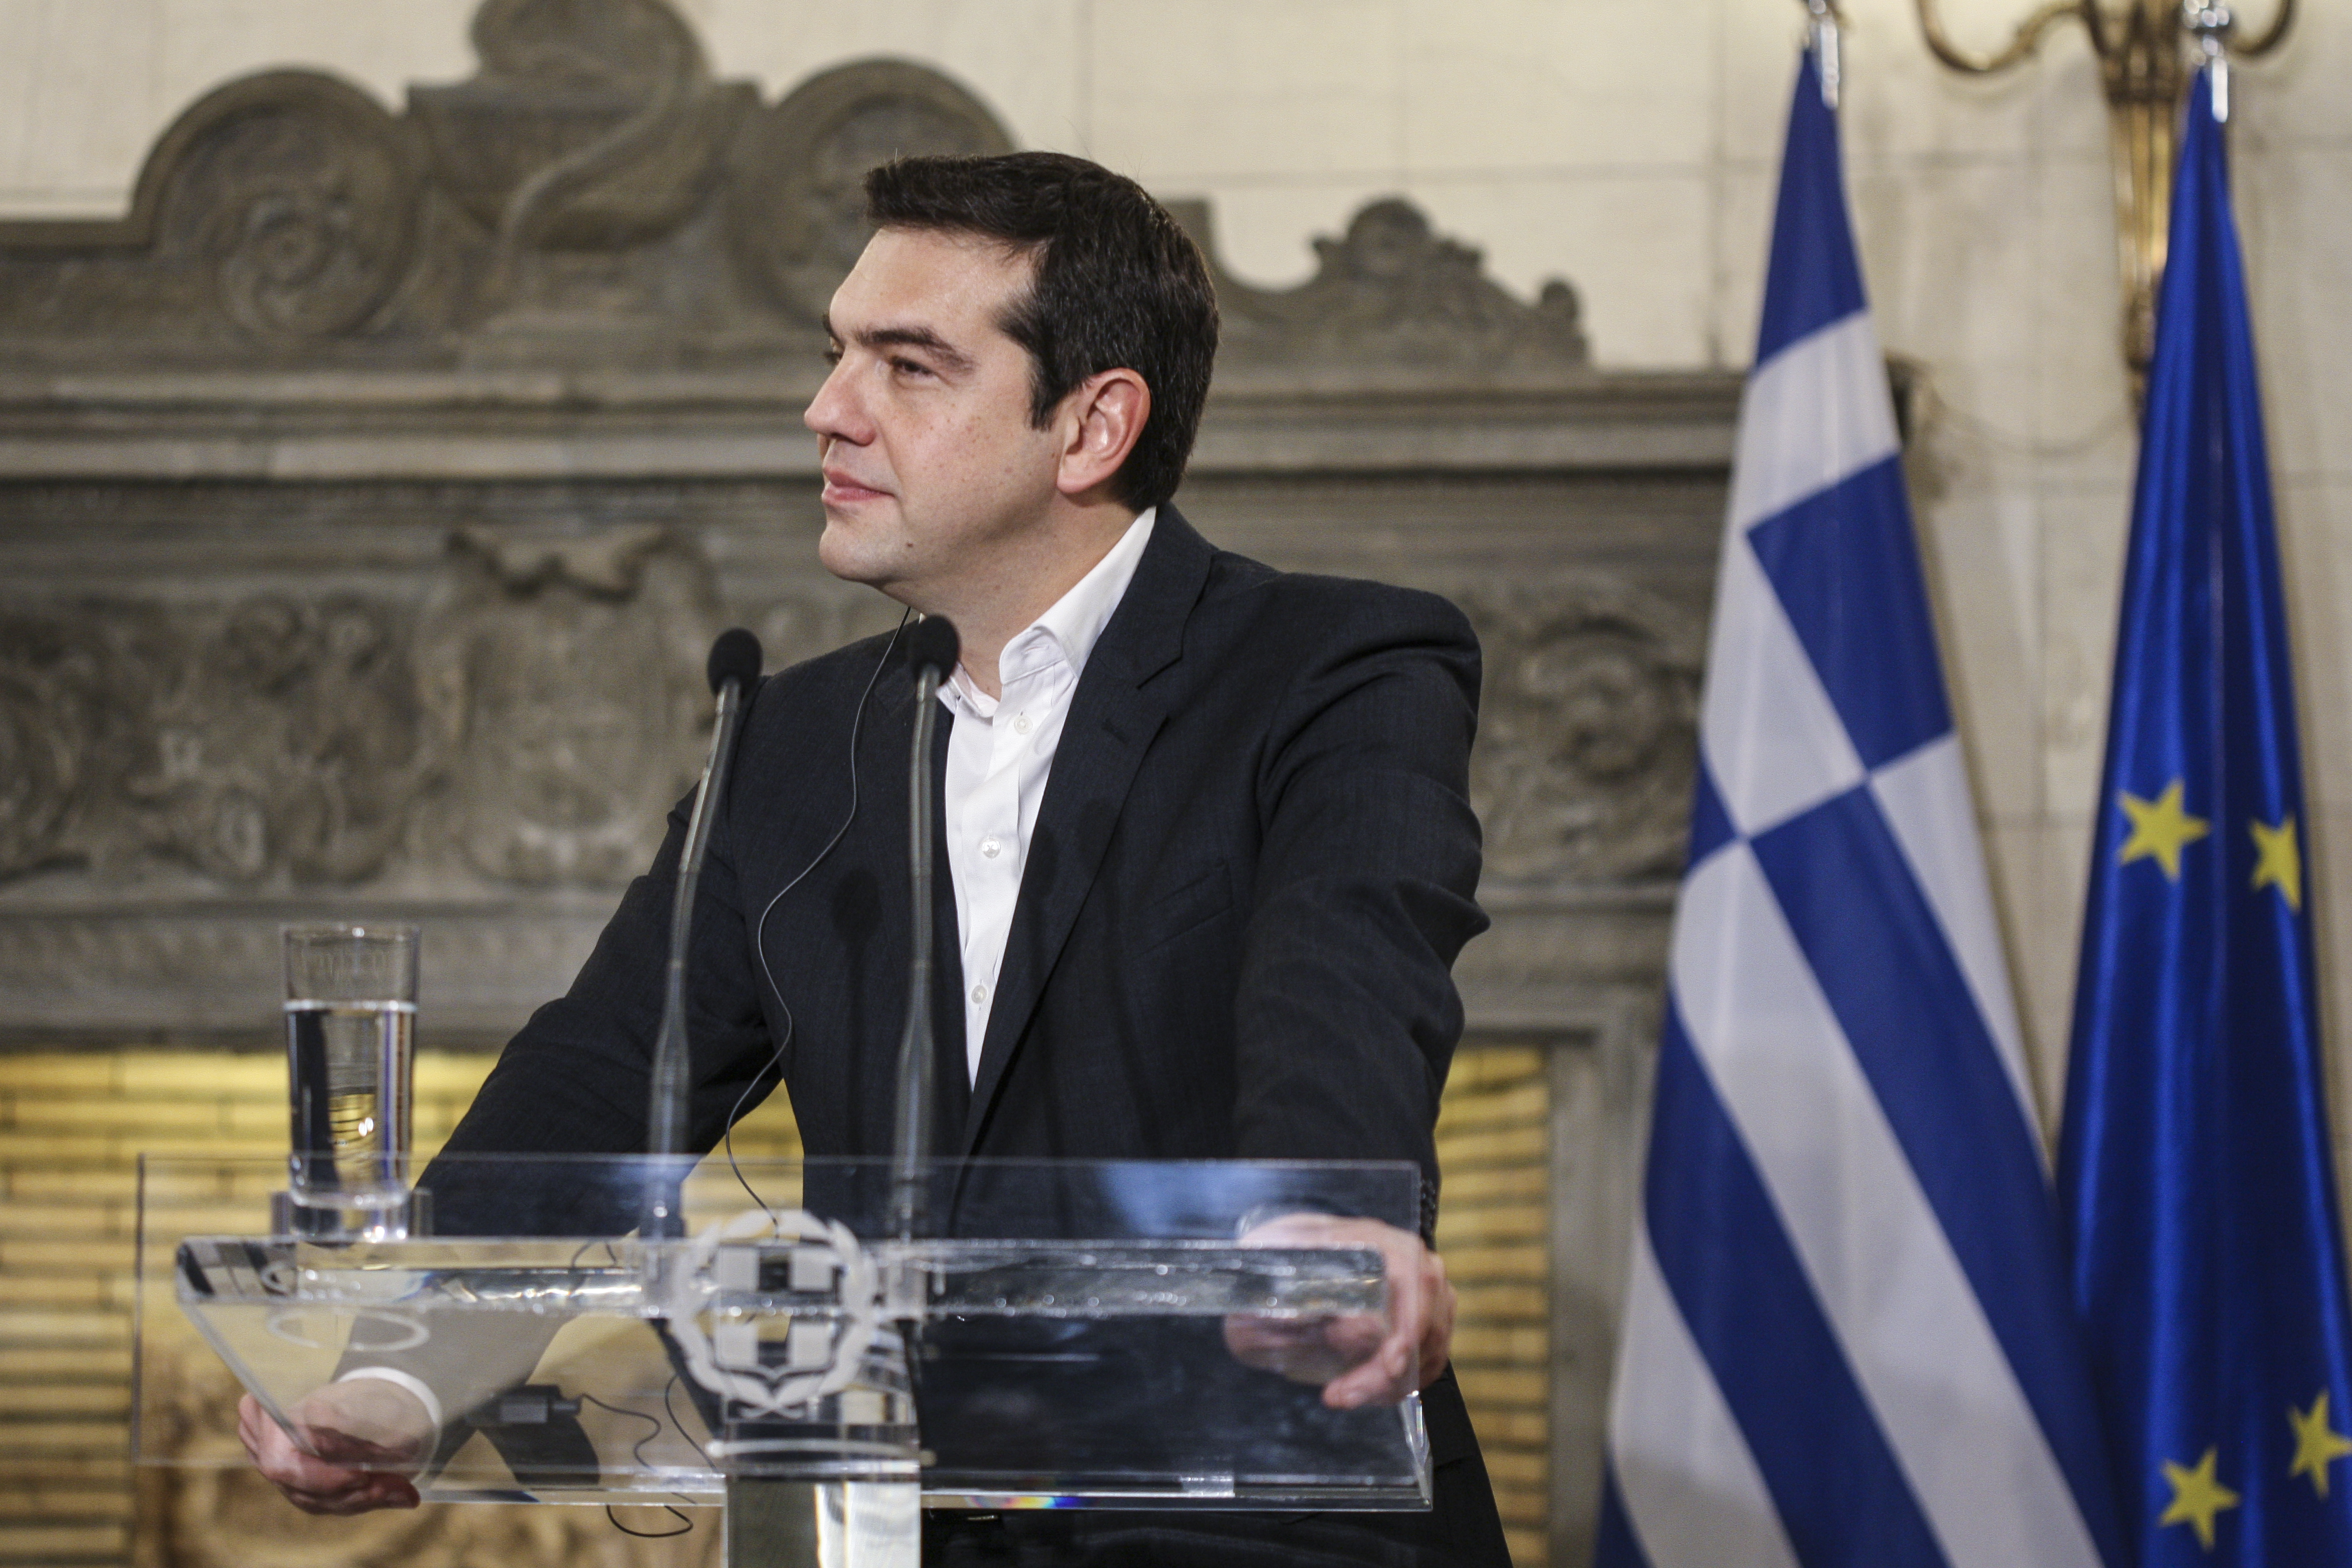 Tsipras: a prime example of today's non-left left.